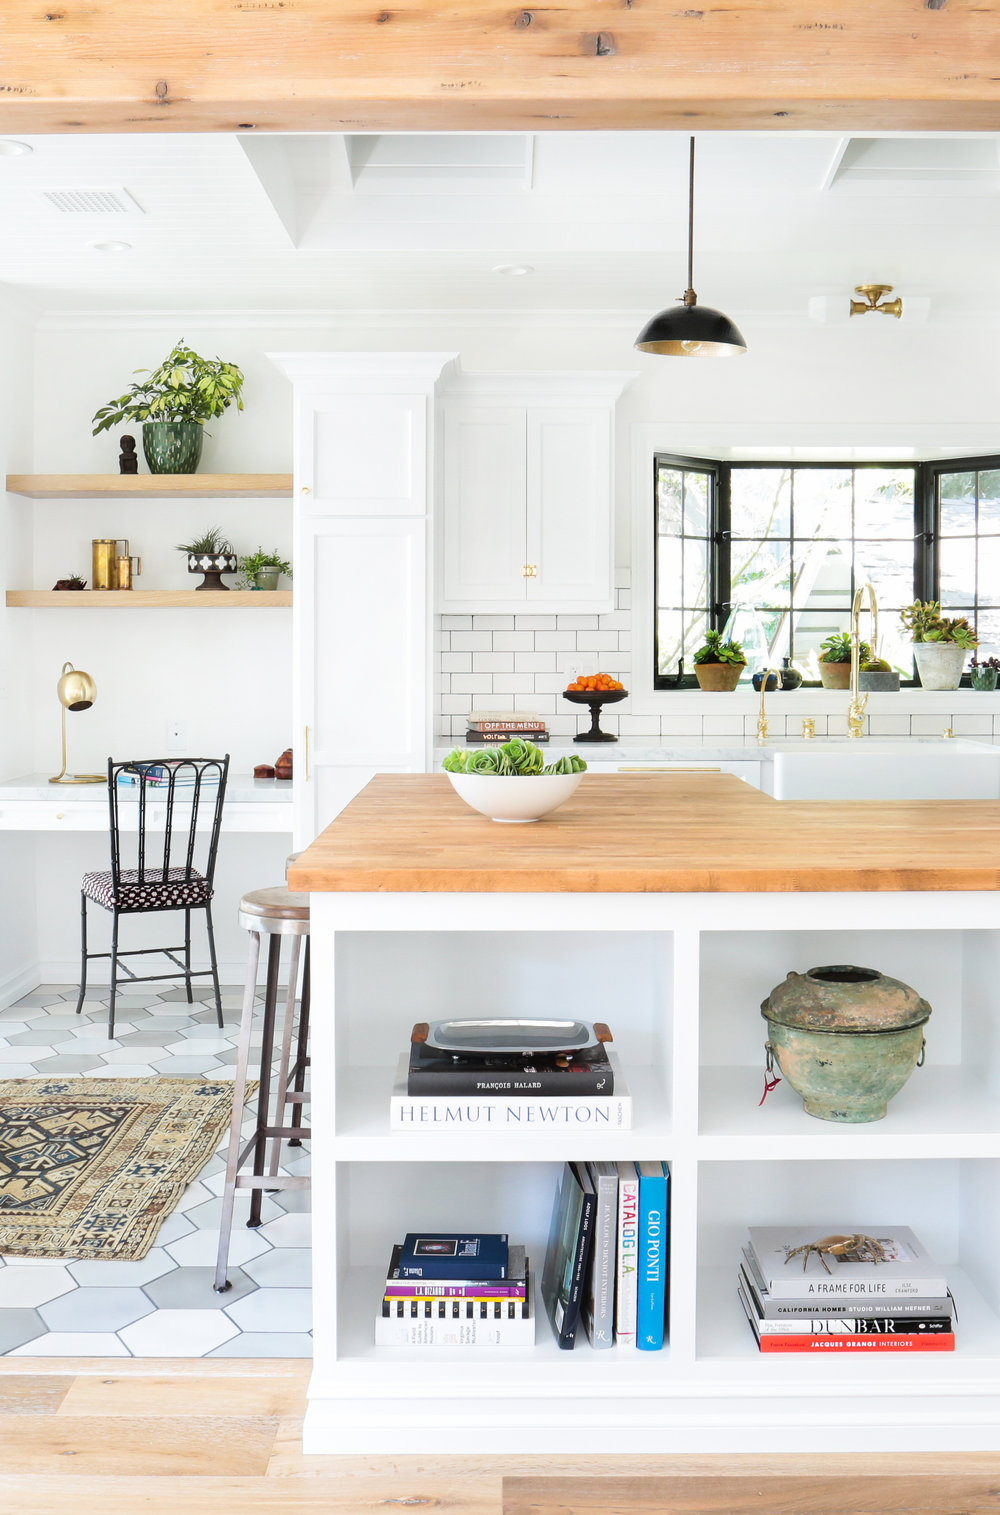 These Kitchens Prove That Subway Tile Backsplashes Will Never Go Out of Style by CHRISTIE CALUCCHIA -  The kitchen is often the focal piece of a home. Although it can be seen as utilitarian, its aesthetic features shouldn't be overlooked. After you've picked your appliances, found an accent rug, and chosen the perfect cabinets, it's time to consider the backsplash.Subway tile backsplashes have long been a go-to design element and for good reason. The glossy tiles are timeless and there is a wide spectrum of variations that can be made to match your personality and your home's décor. Branch out with new materials like marble or vary your layout with a herringbone or crosshatch design instead of the traditional horizontal stack bond approach. Take a look at these stunning kitchens for some much-needed design inspo.